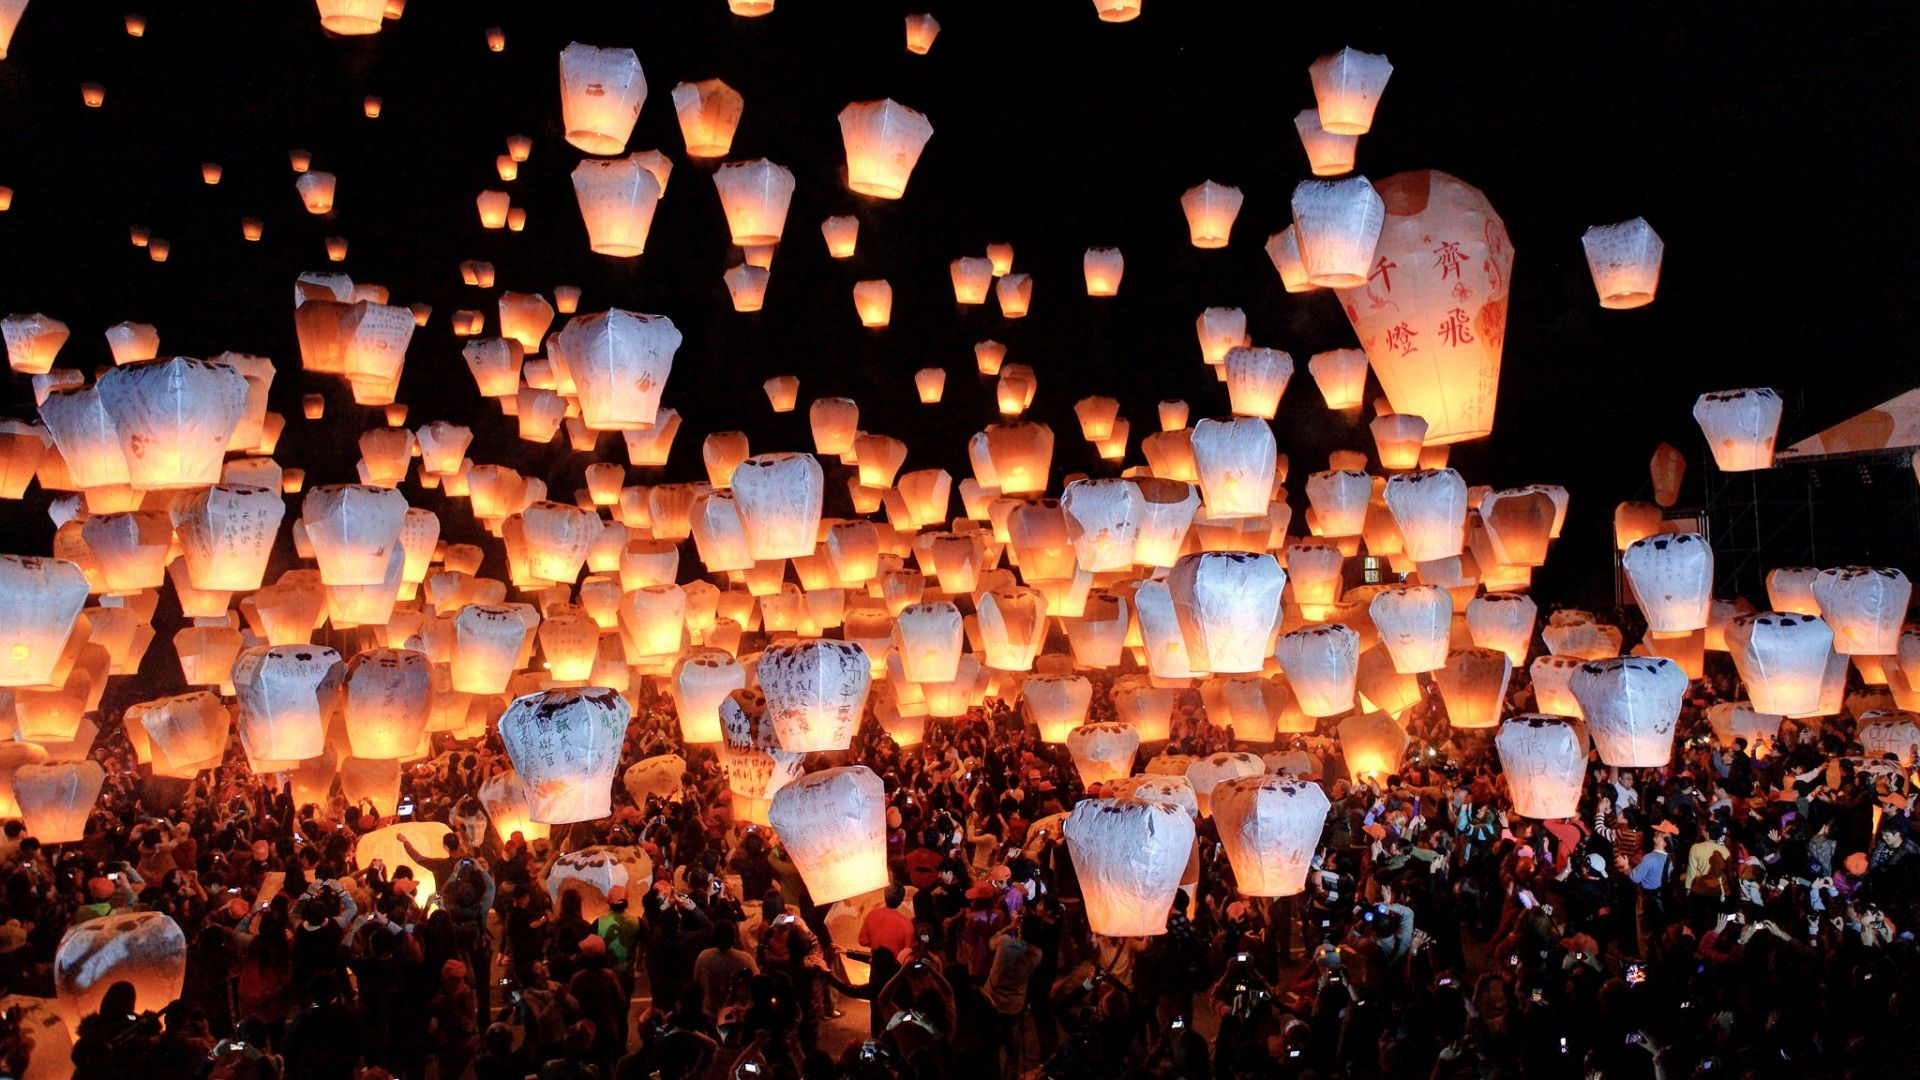 Chinese Sky Lanterns Wallpapers Top Free Chinese Sky Lanterns Backgrounds Wallpaperaccess